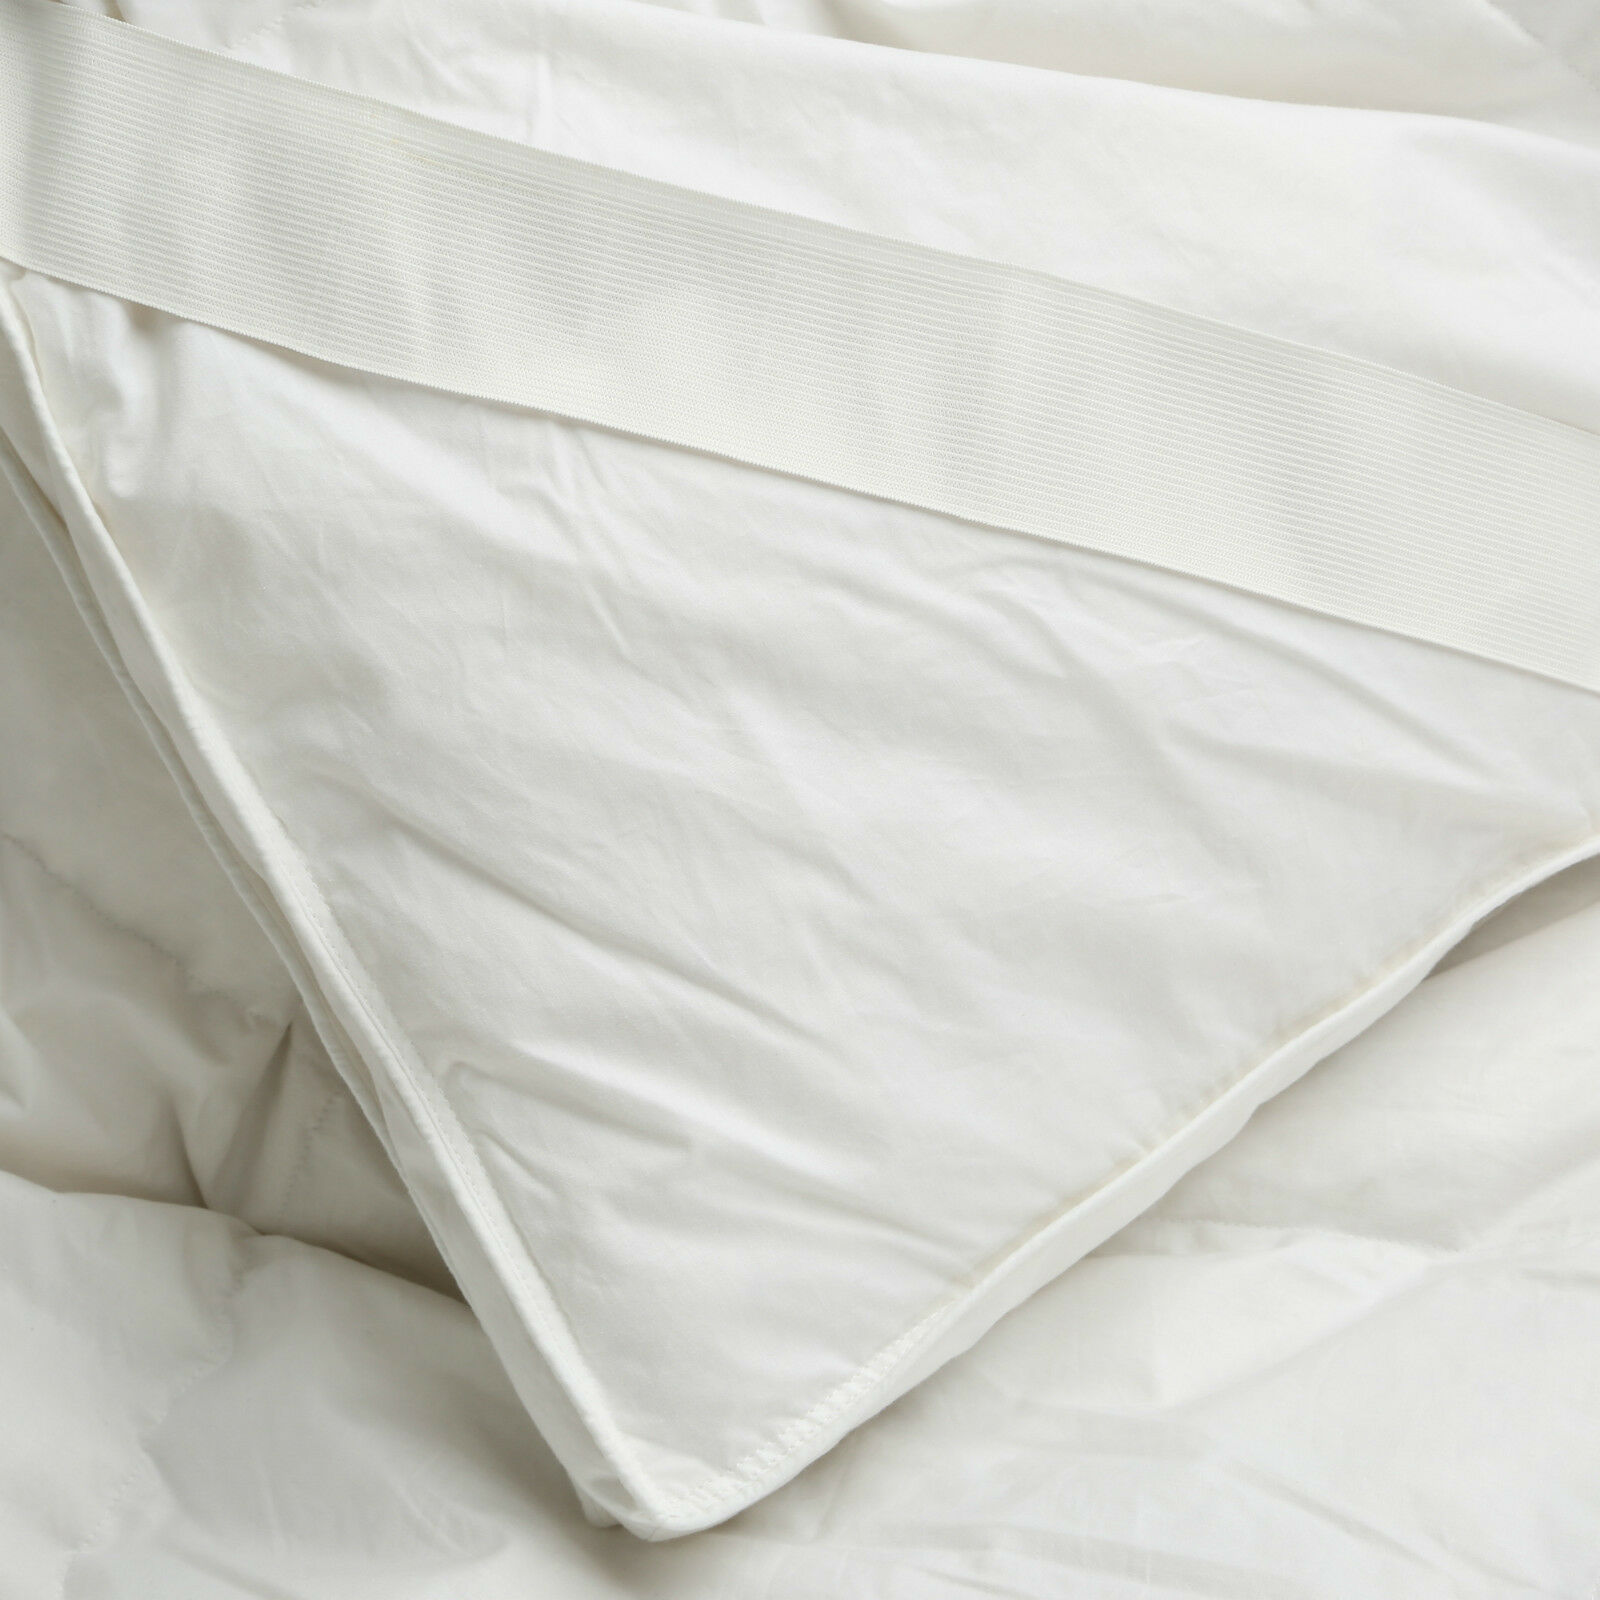 Goose Feather And Down Mattress Toppers Bed Enhancer 50 50